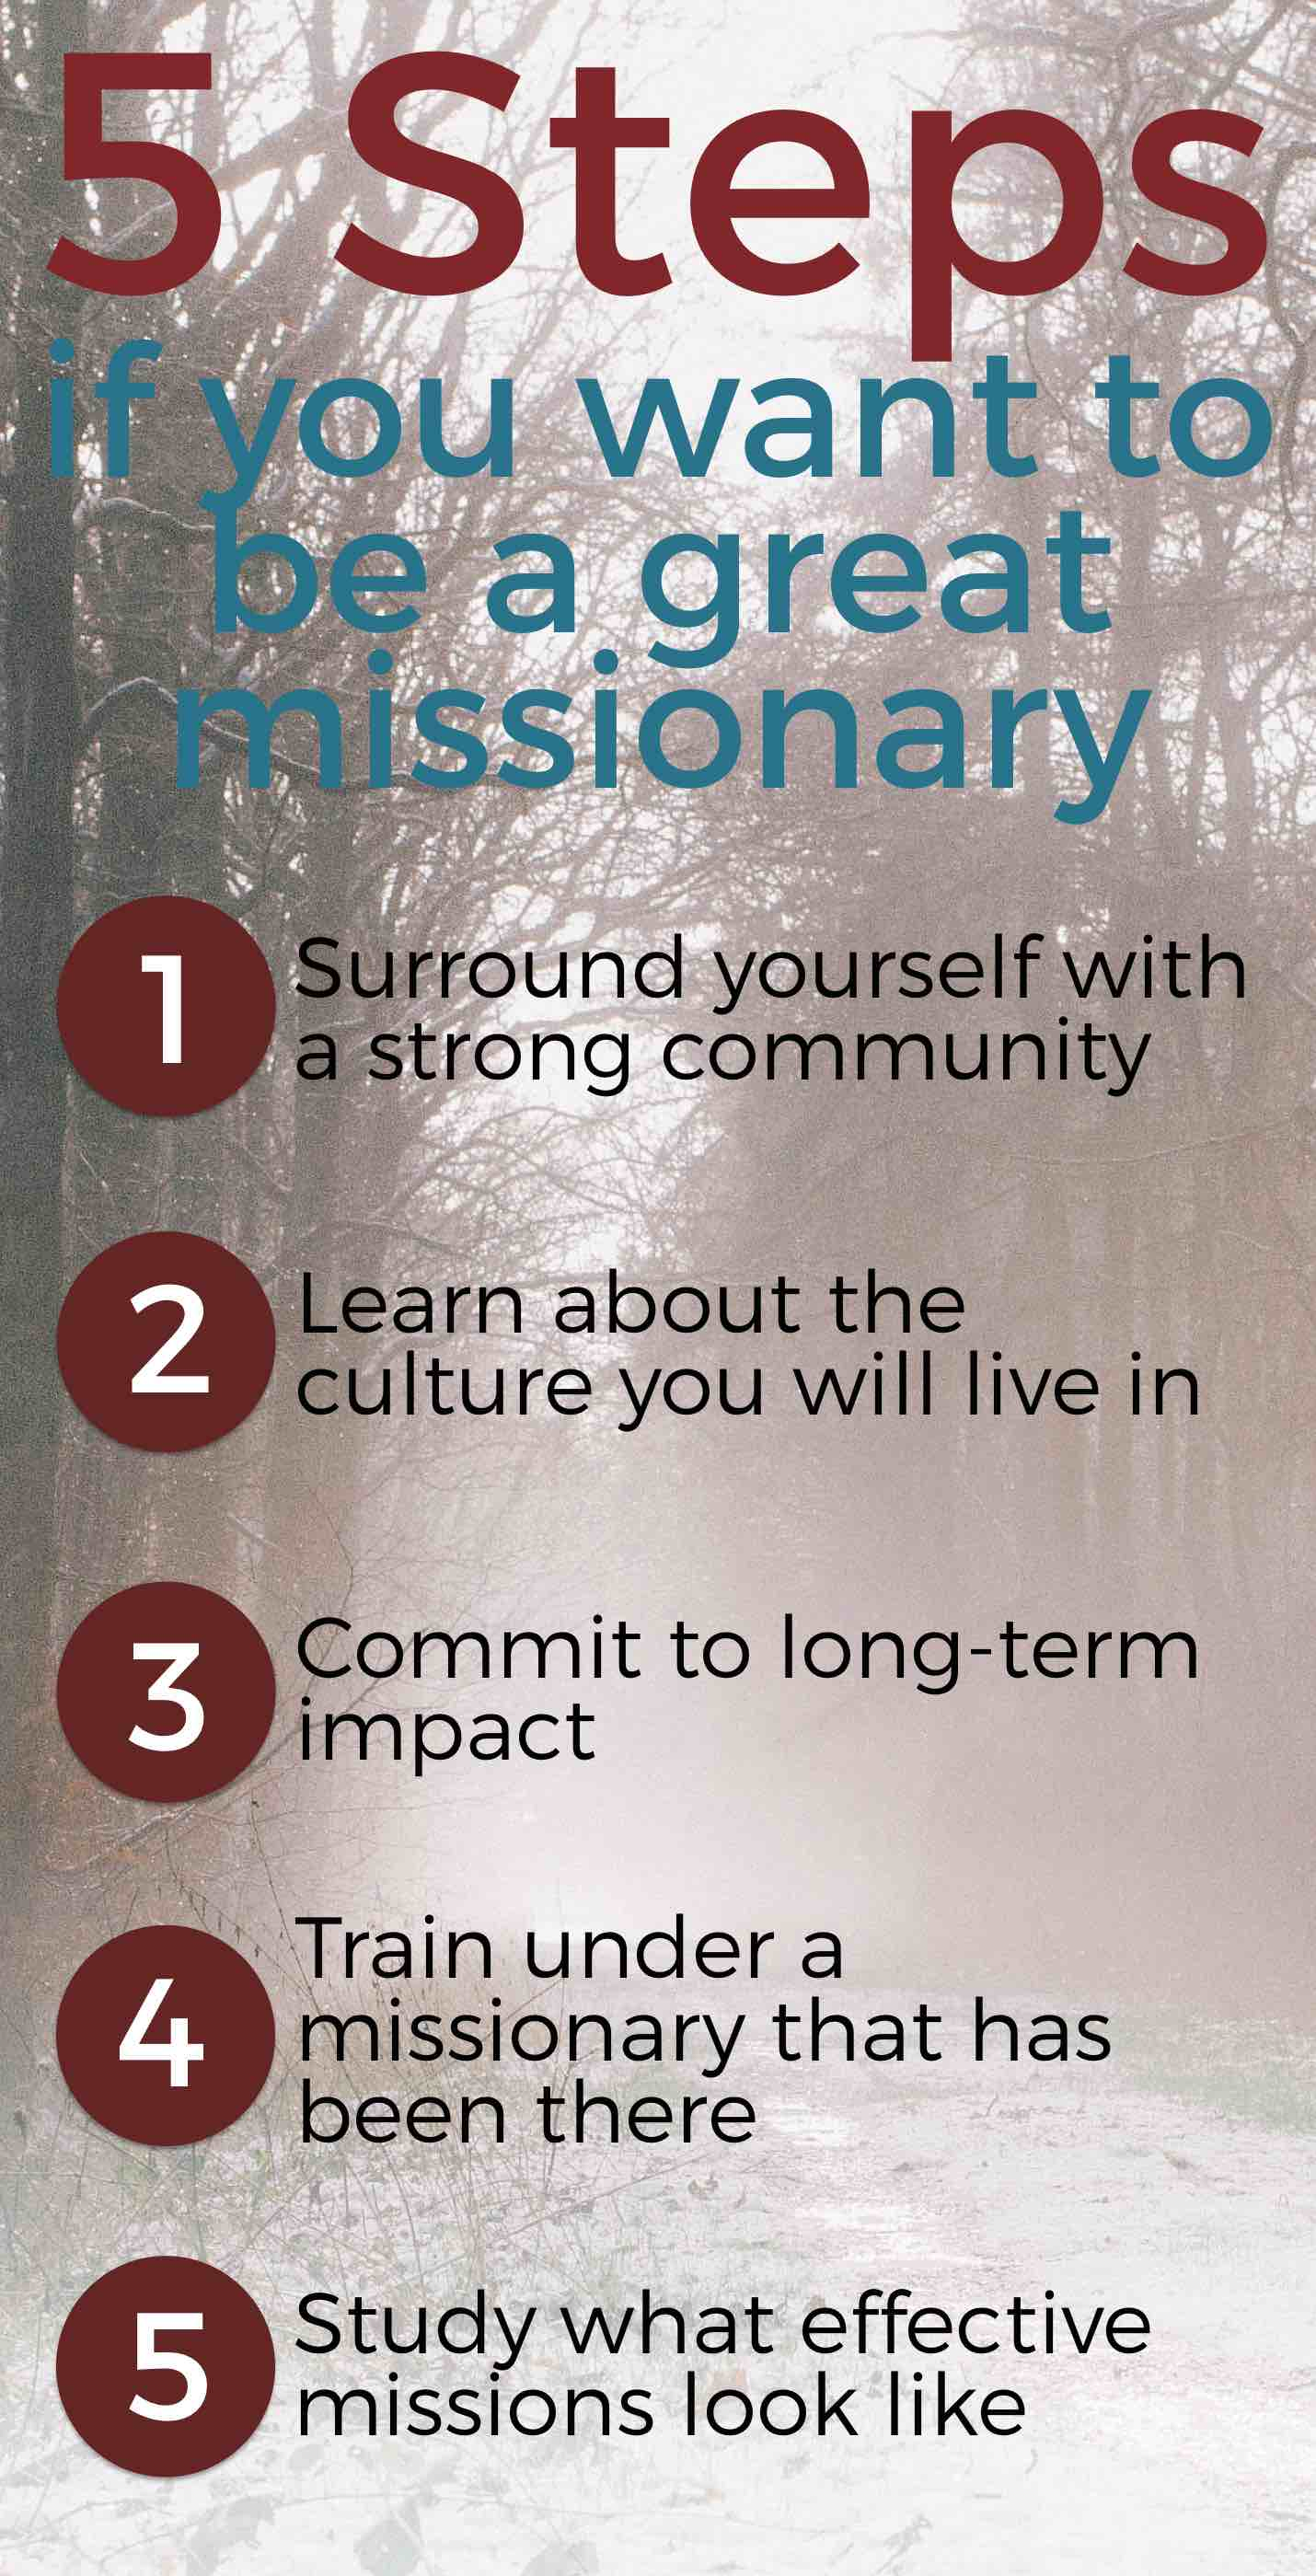 Here are the 5 steps that you need to take if you want to be a great long-term missionary